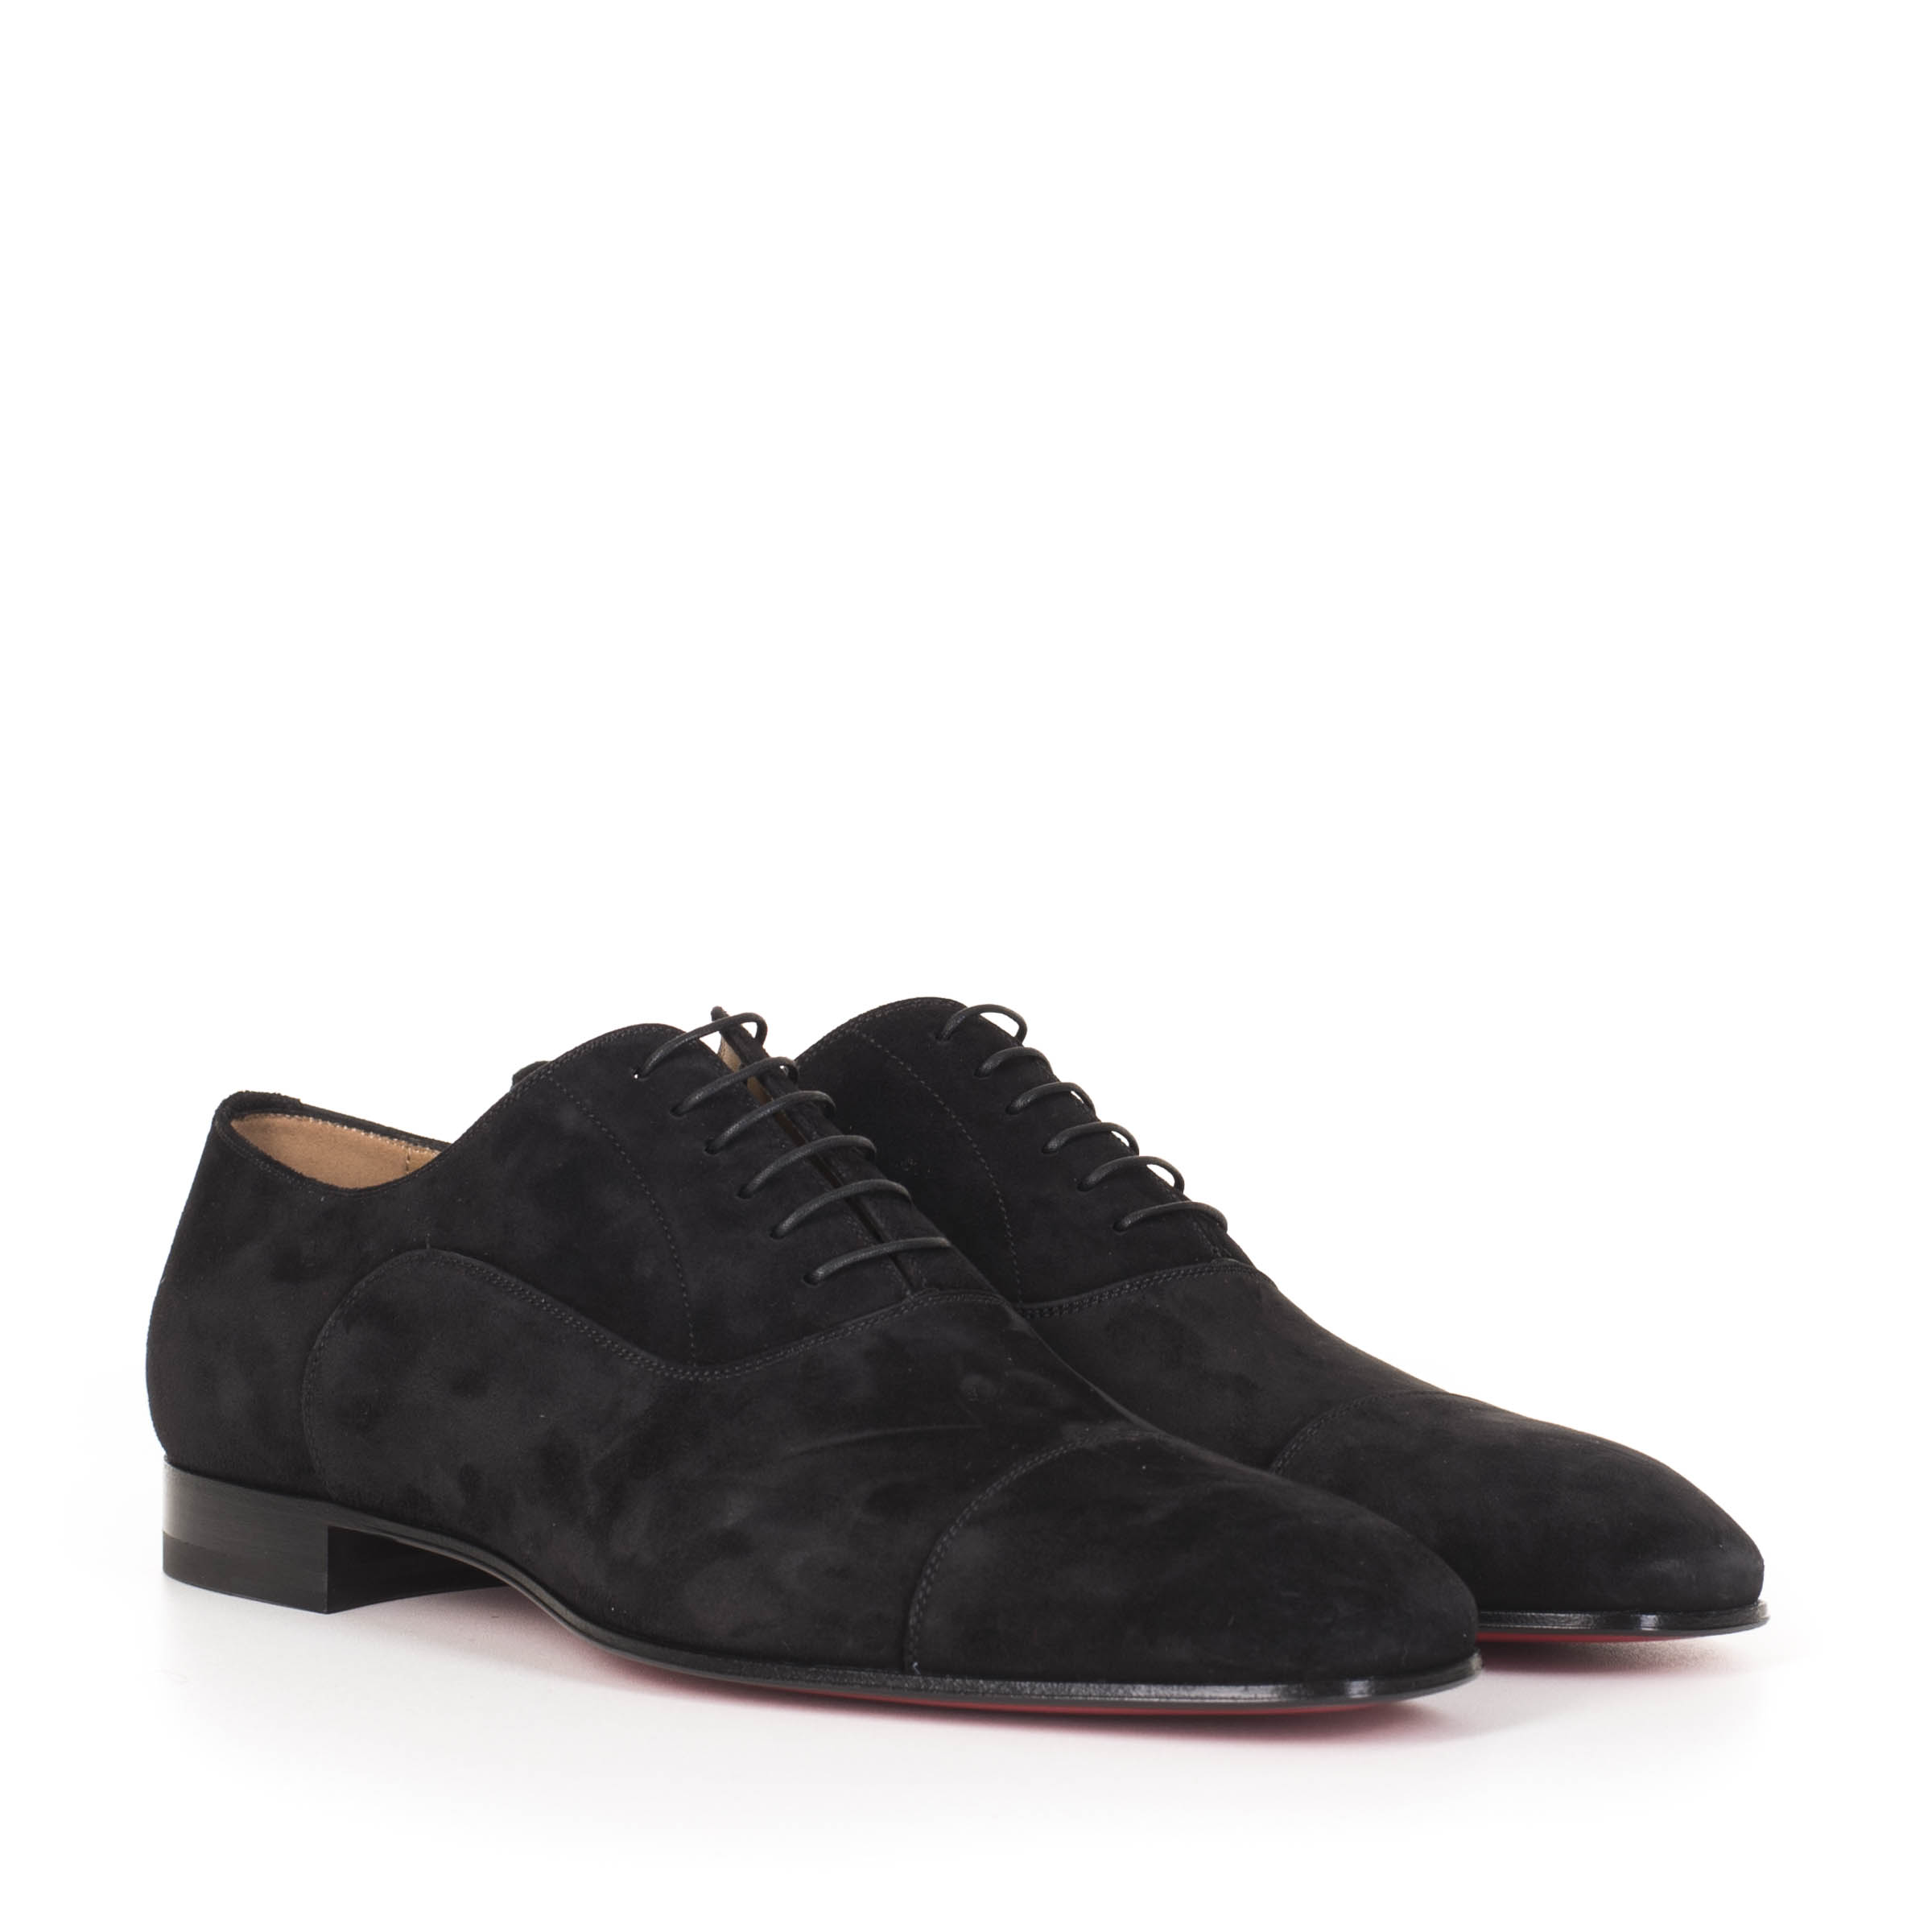 new arrival d77e0 c61c9 Black Suede Greggo Derby Shoes